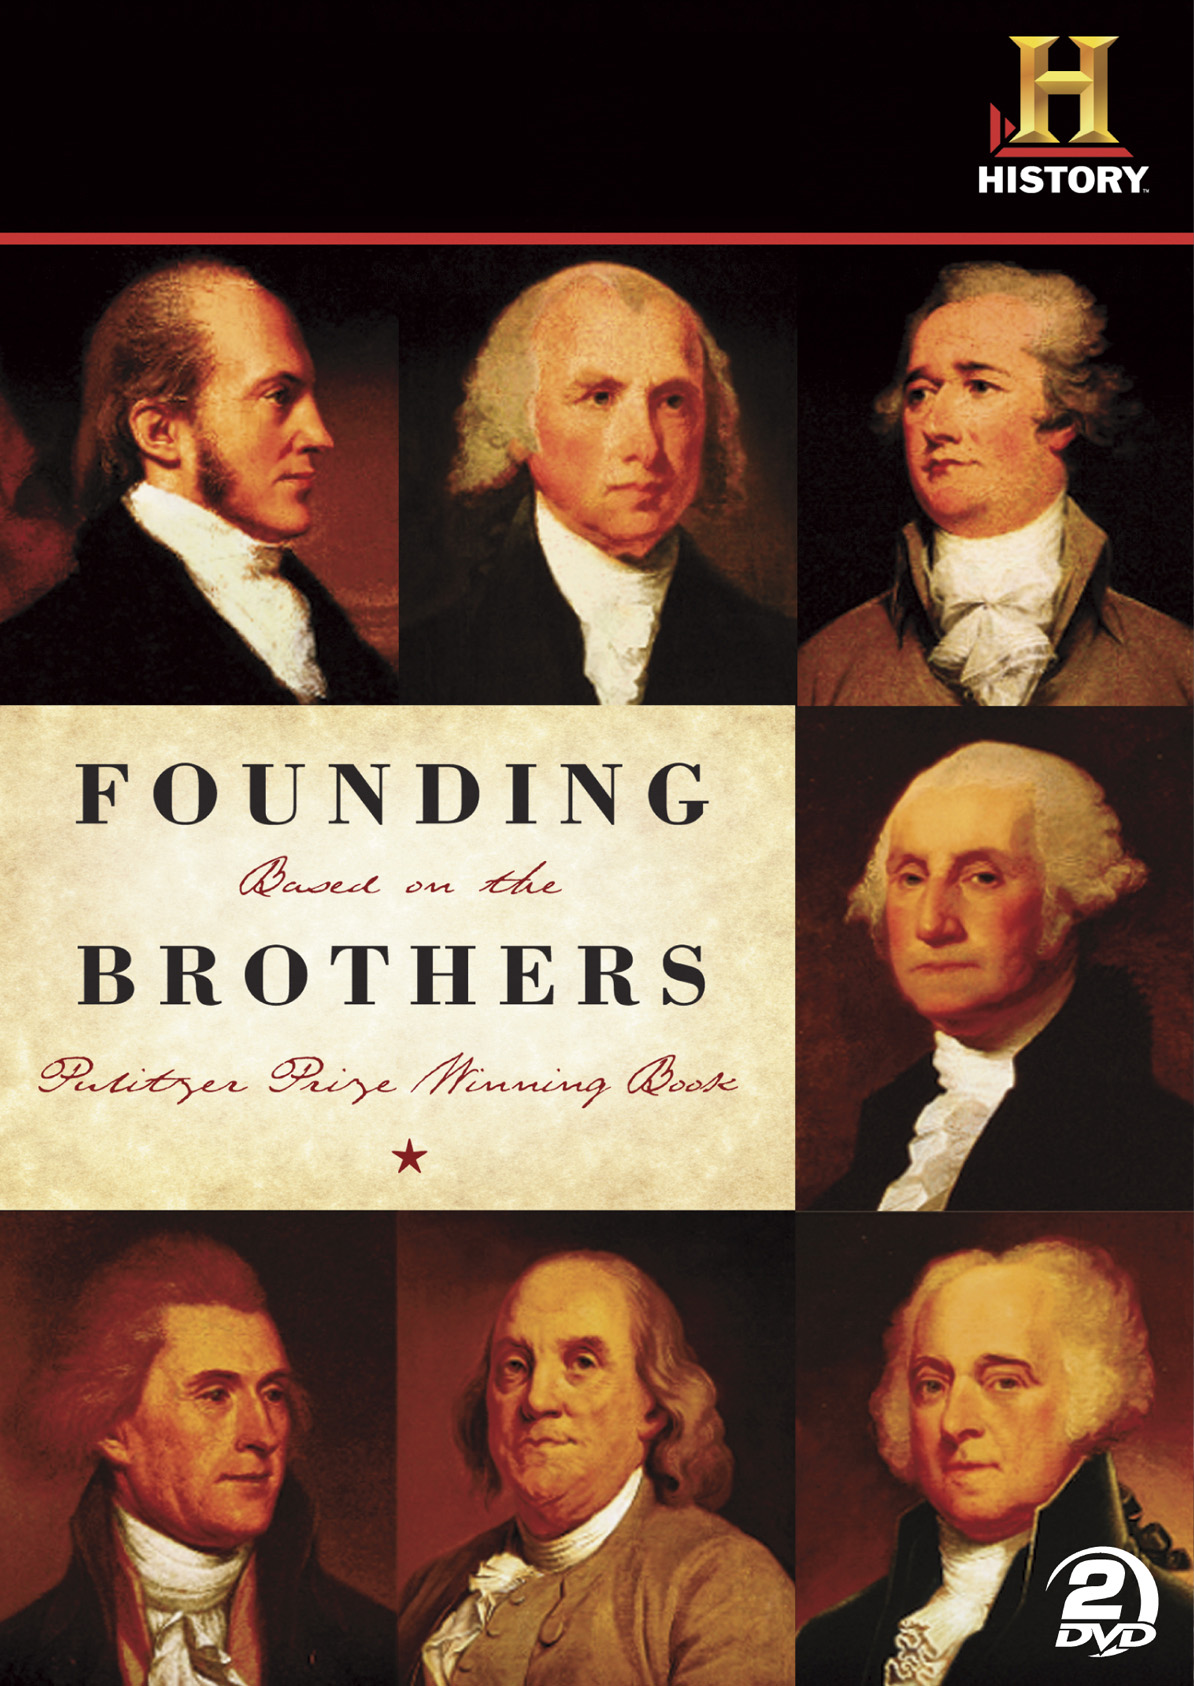 founding brothers author thesis Joseph ellis joseph ellis ellis born: joseph john ellis july 18, 1943 (age 74) washington, dc occupation: founding brothers.